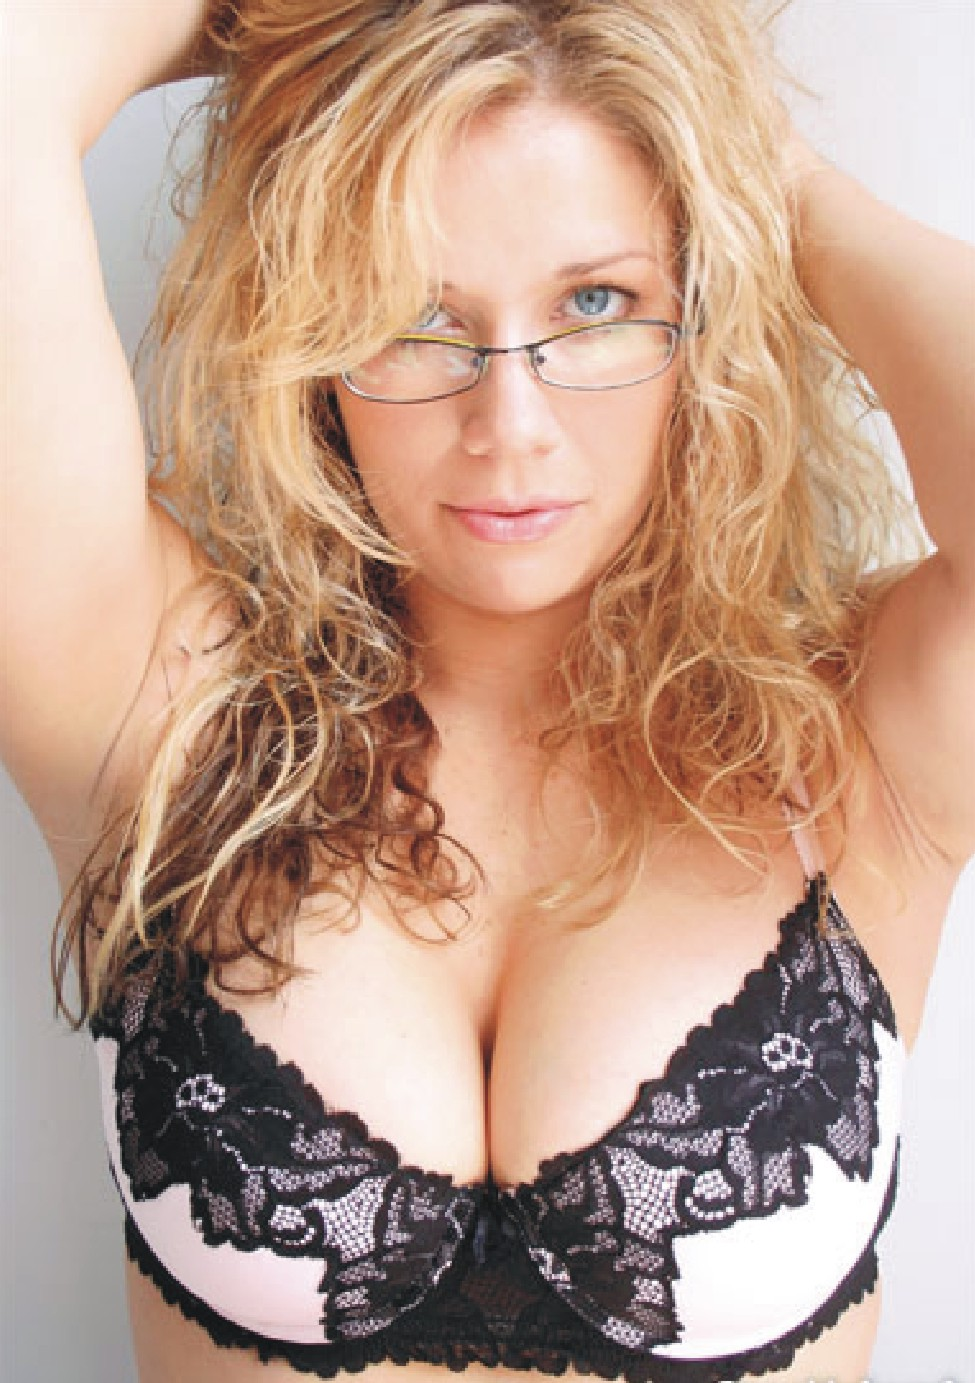 Best Cleavages in The World: Blonde Cleavage